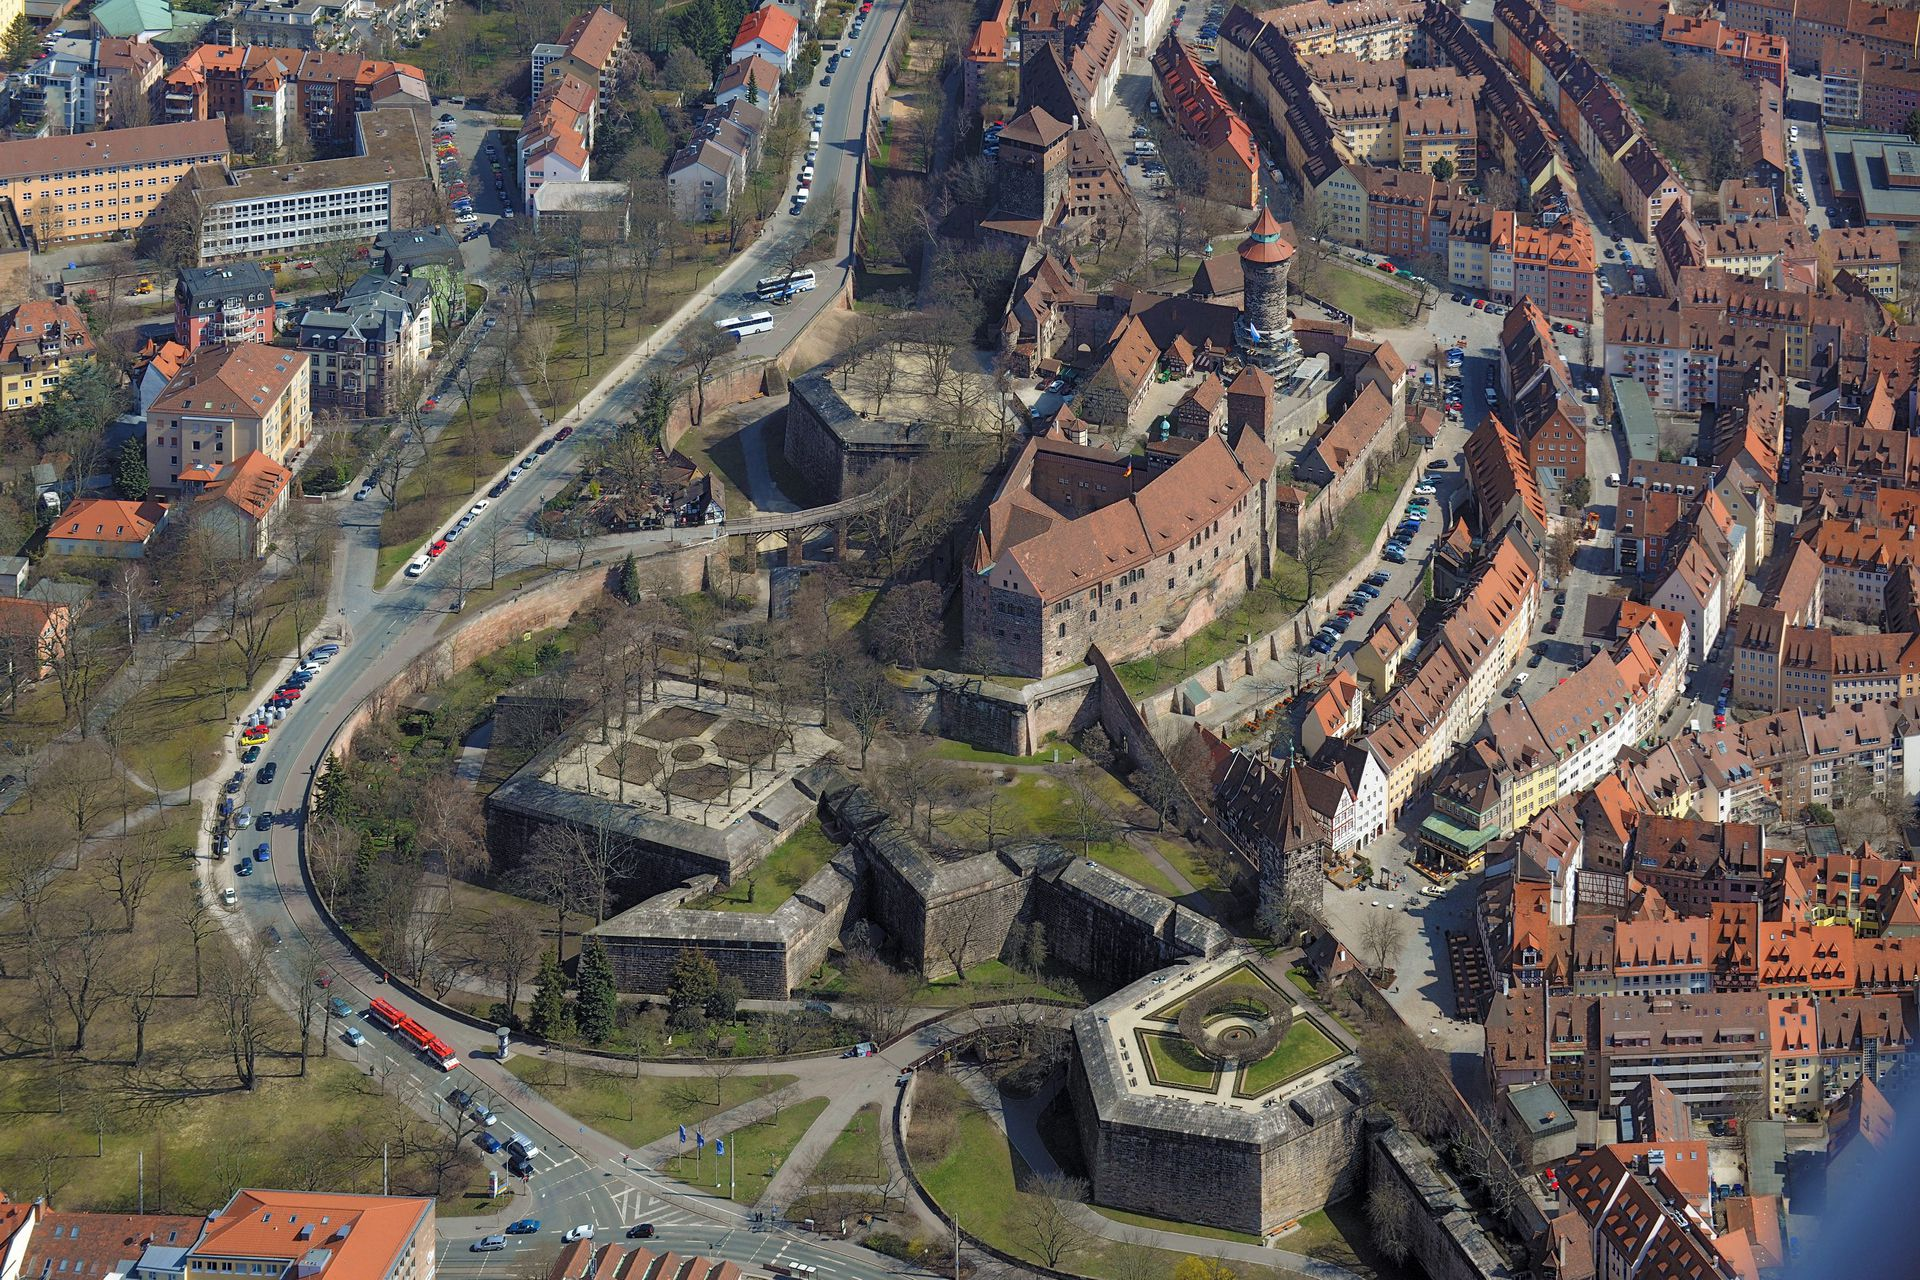 City Fortification Photo in spring, in the foreground Tiergärtnertor bastion